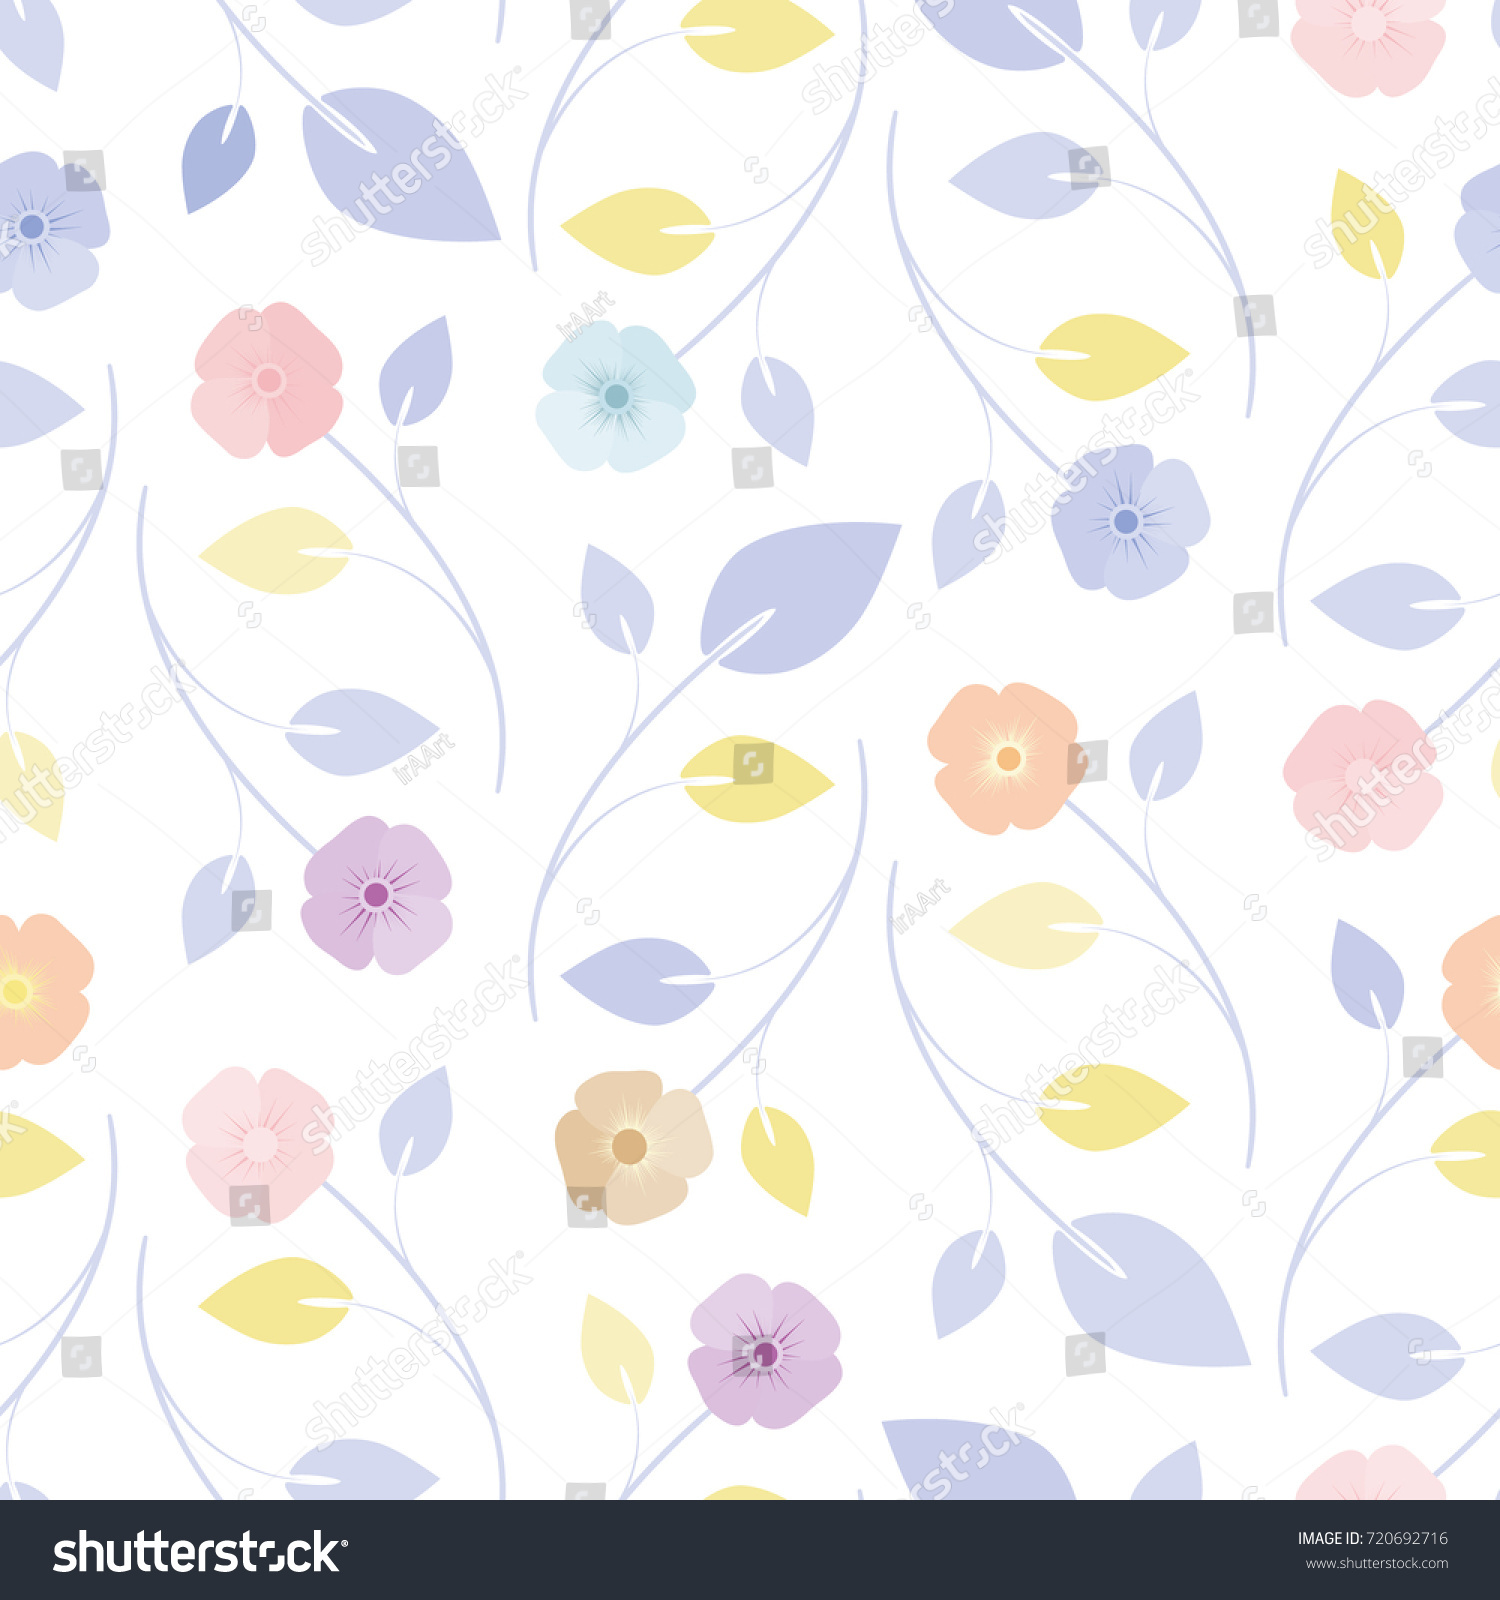 Cute seamless floral pattern simple flowers cute seamless floral pattern simple flowers 720692716 shutterstock voltagebd Images